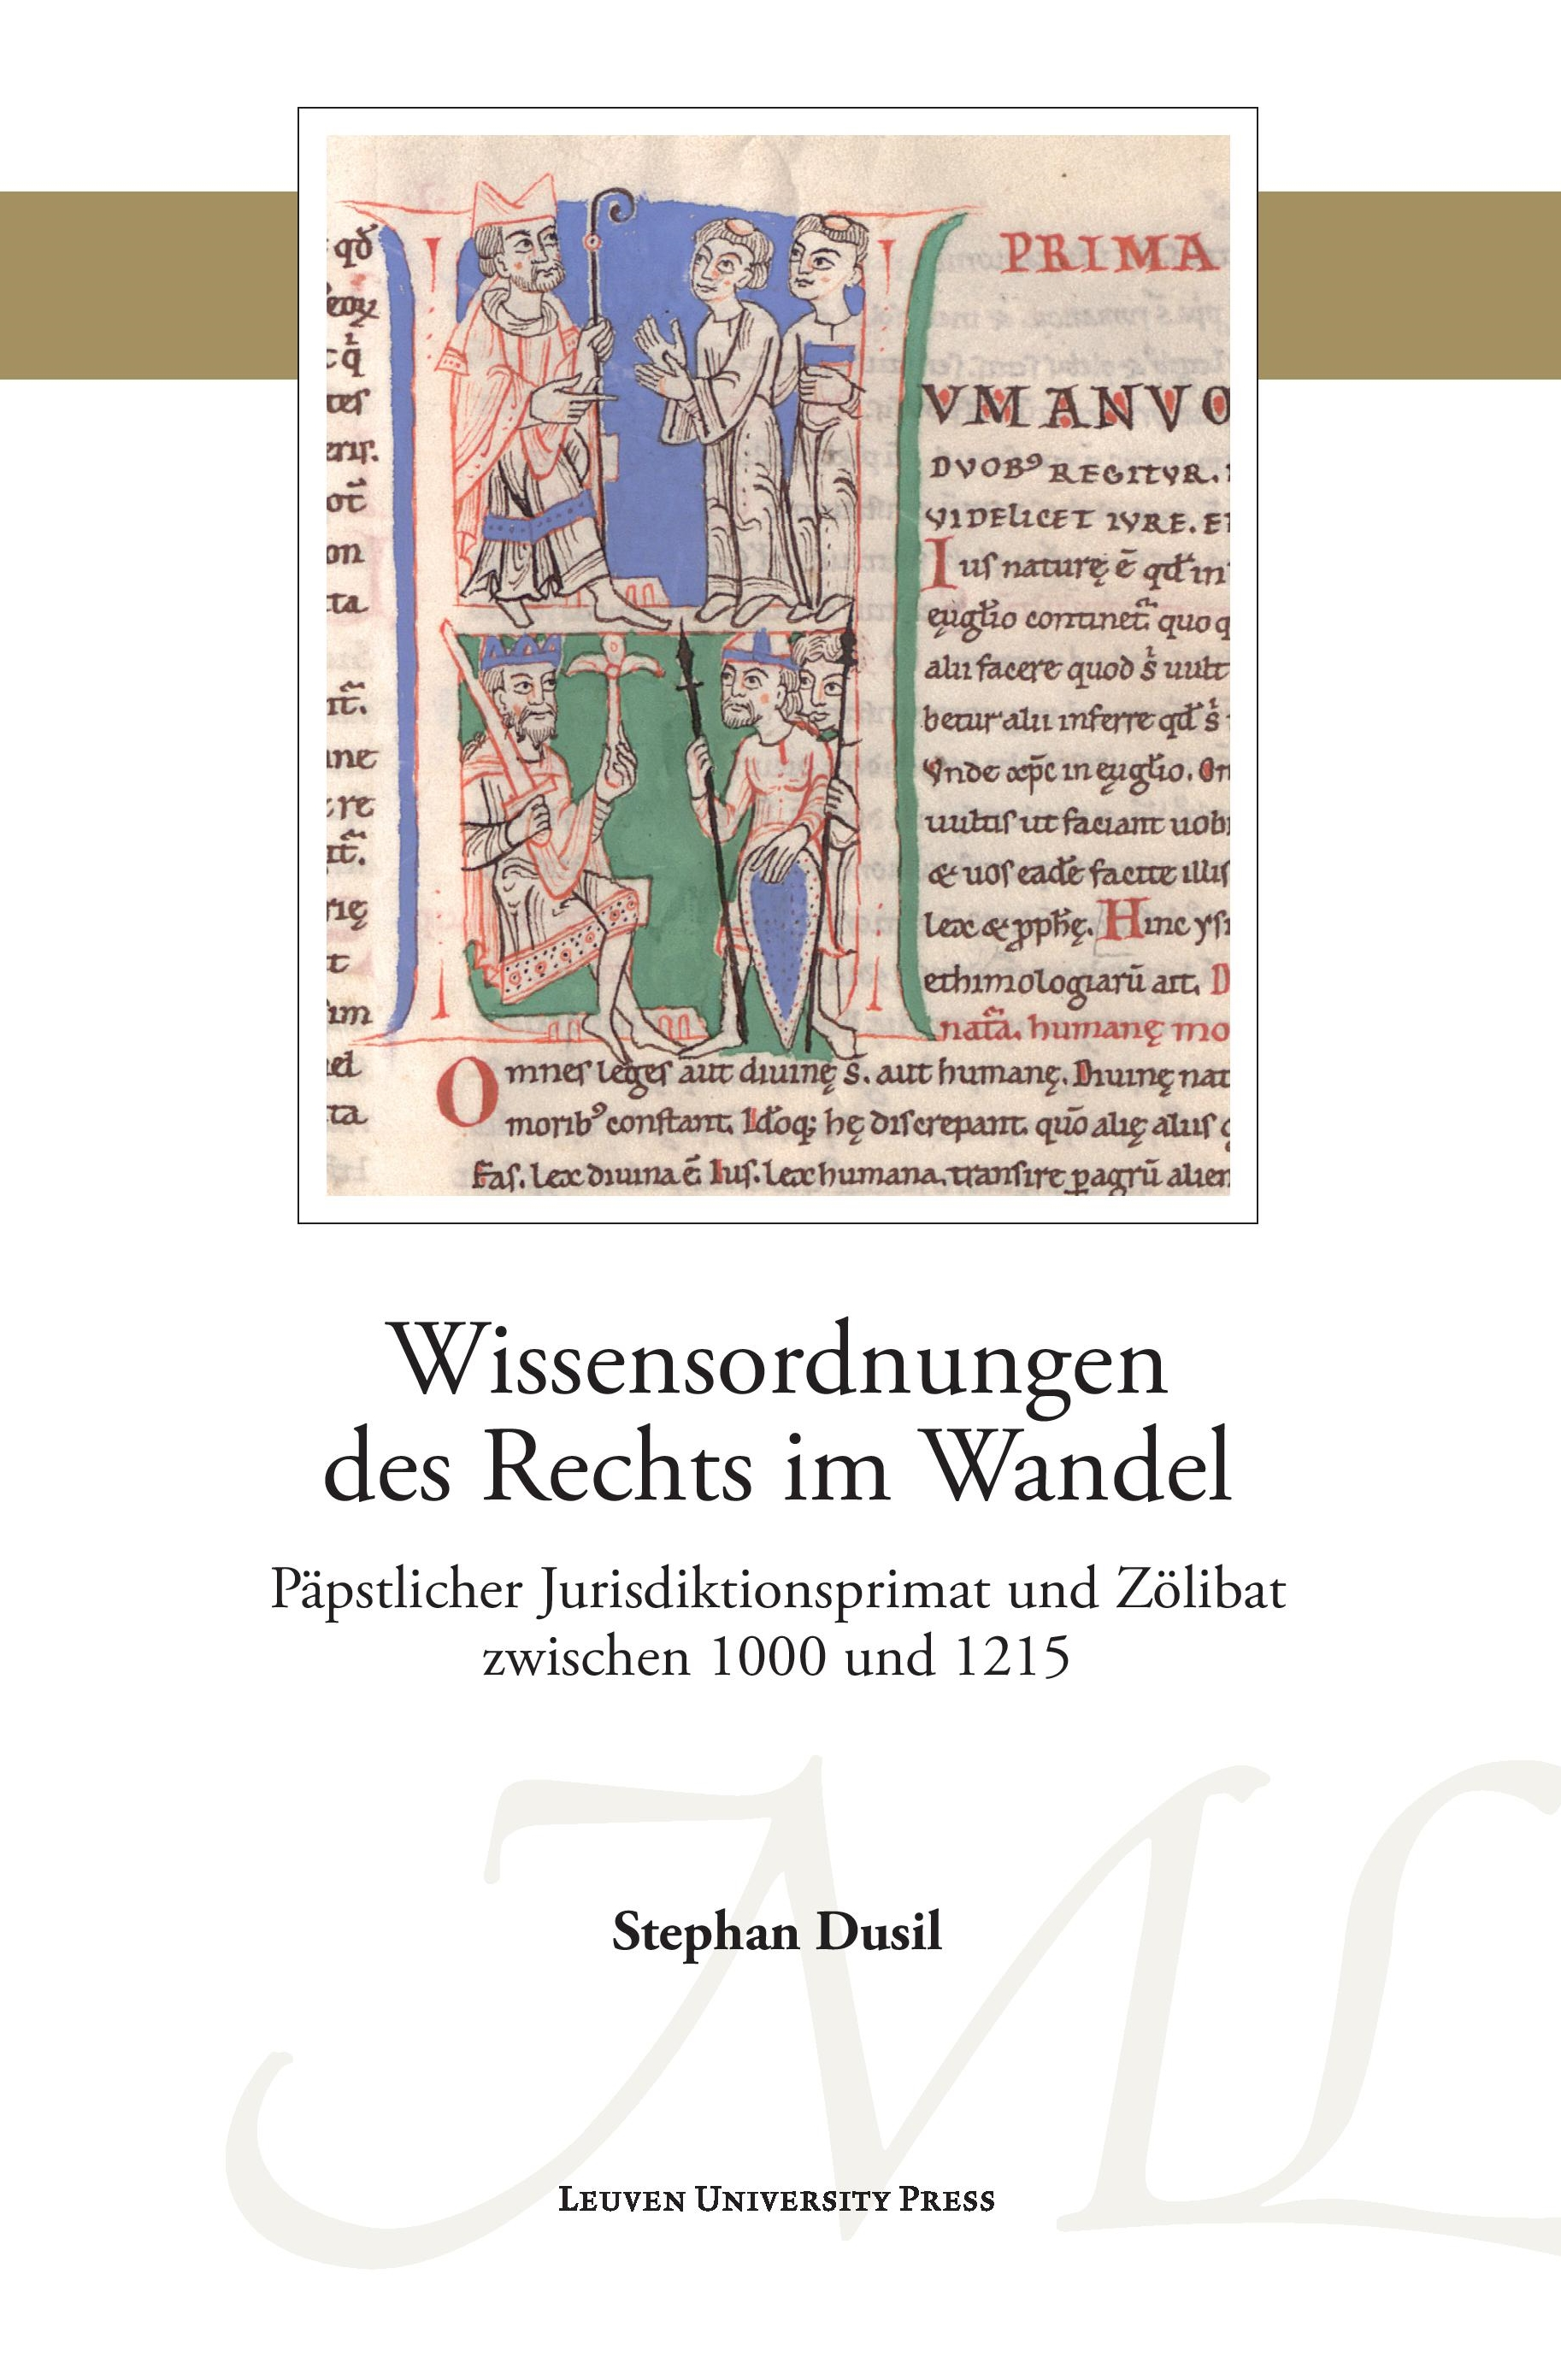 The KULeuven Announced That Prof Dr Stefan DUSIL Research Unit Of Roman Law And Legal History Won Hermann Conring Preis 2018 For Book